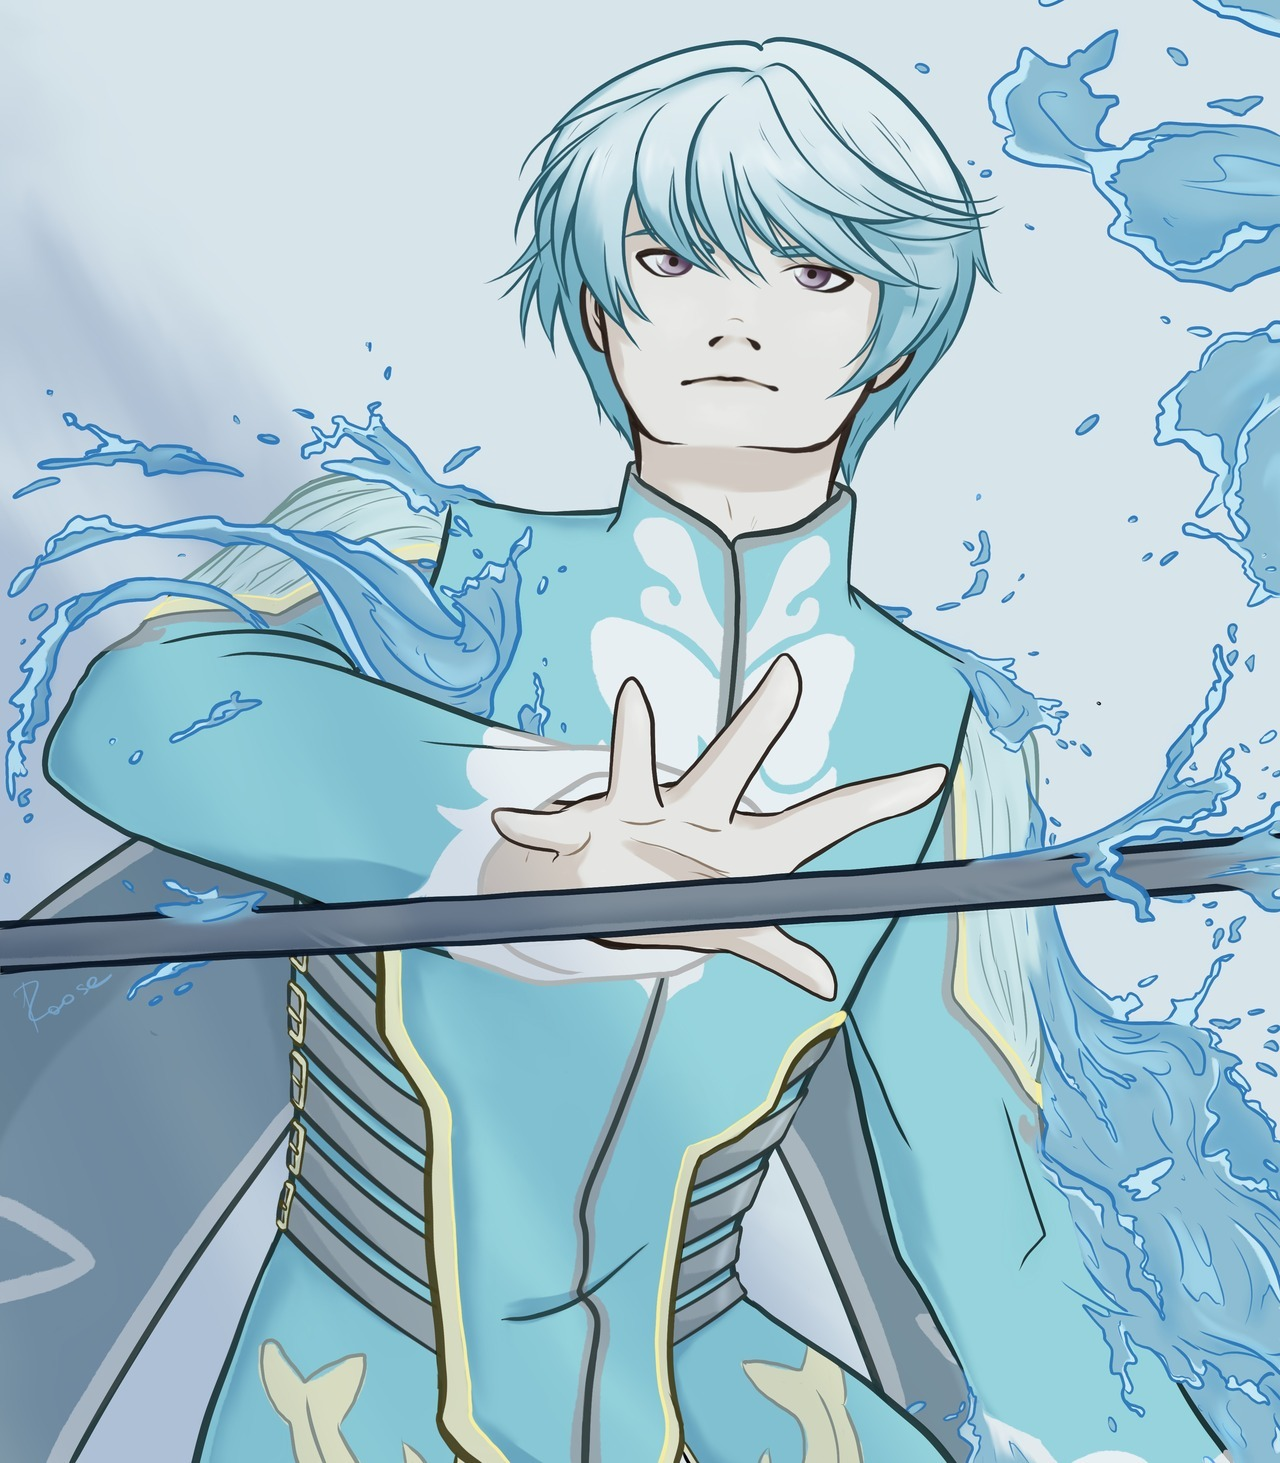 I need water… And him too! 🙈 #mikleo #tales of zestiria #toz#mikleo toz#blue#water #mikleo tales of zestiria #mineart#raose